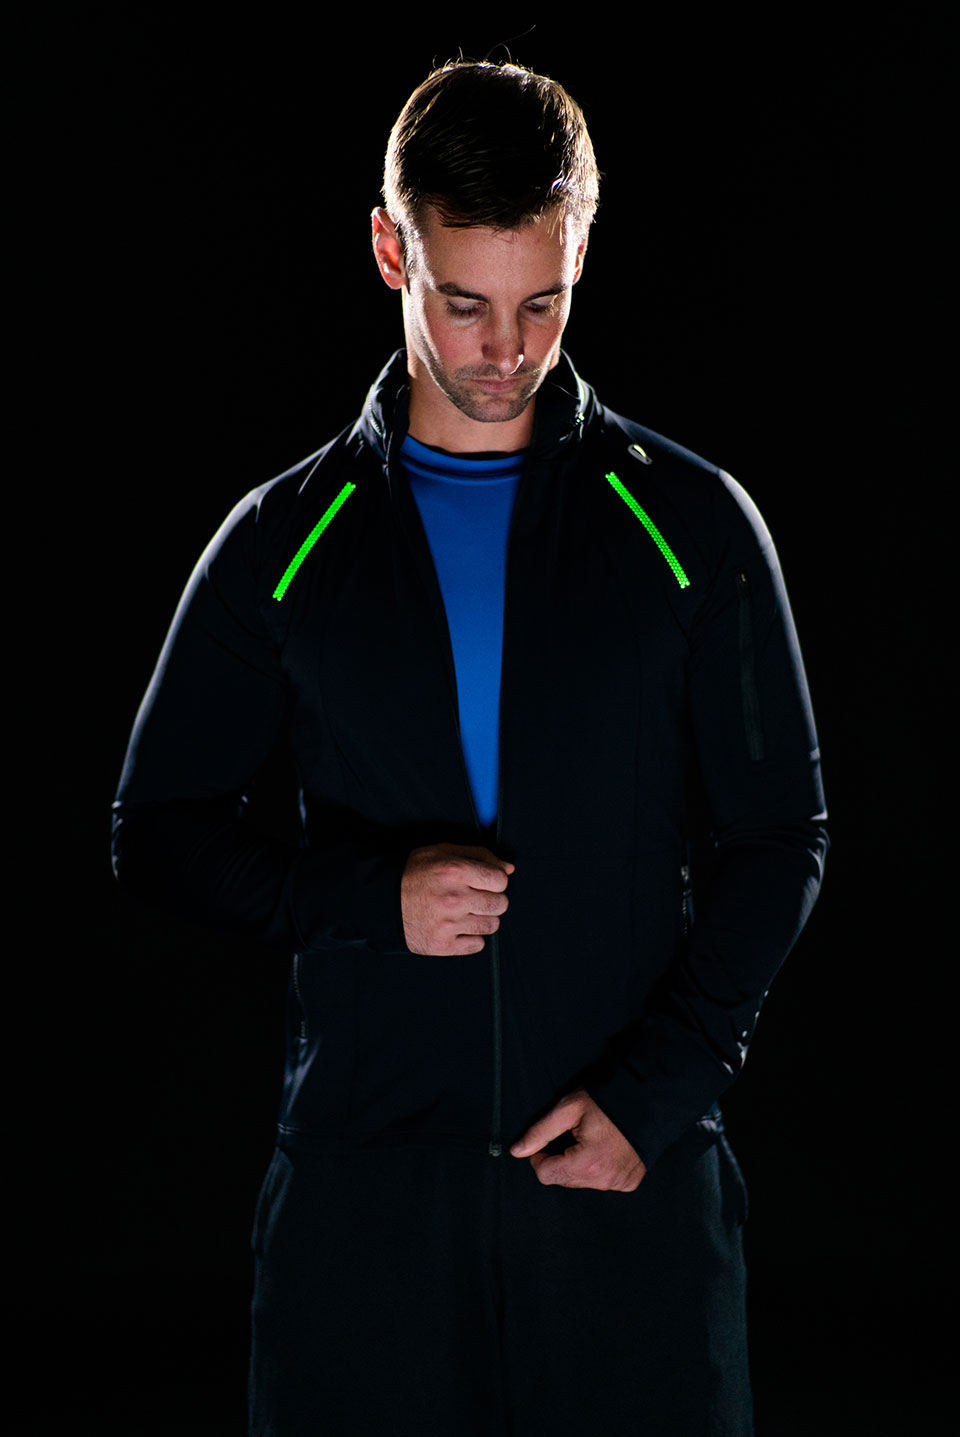 Nova LED Running Jacket